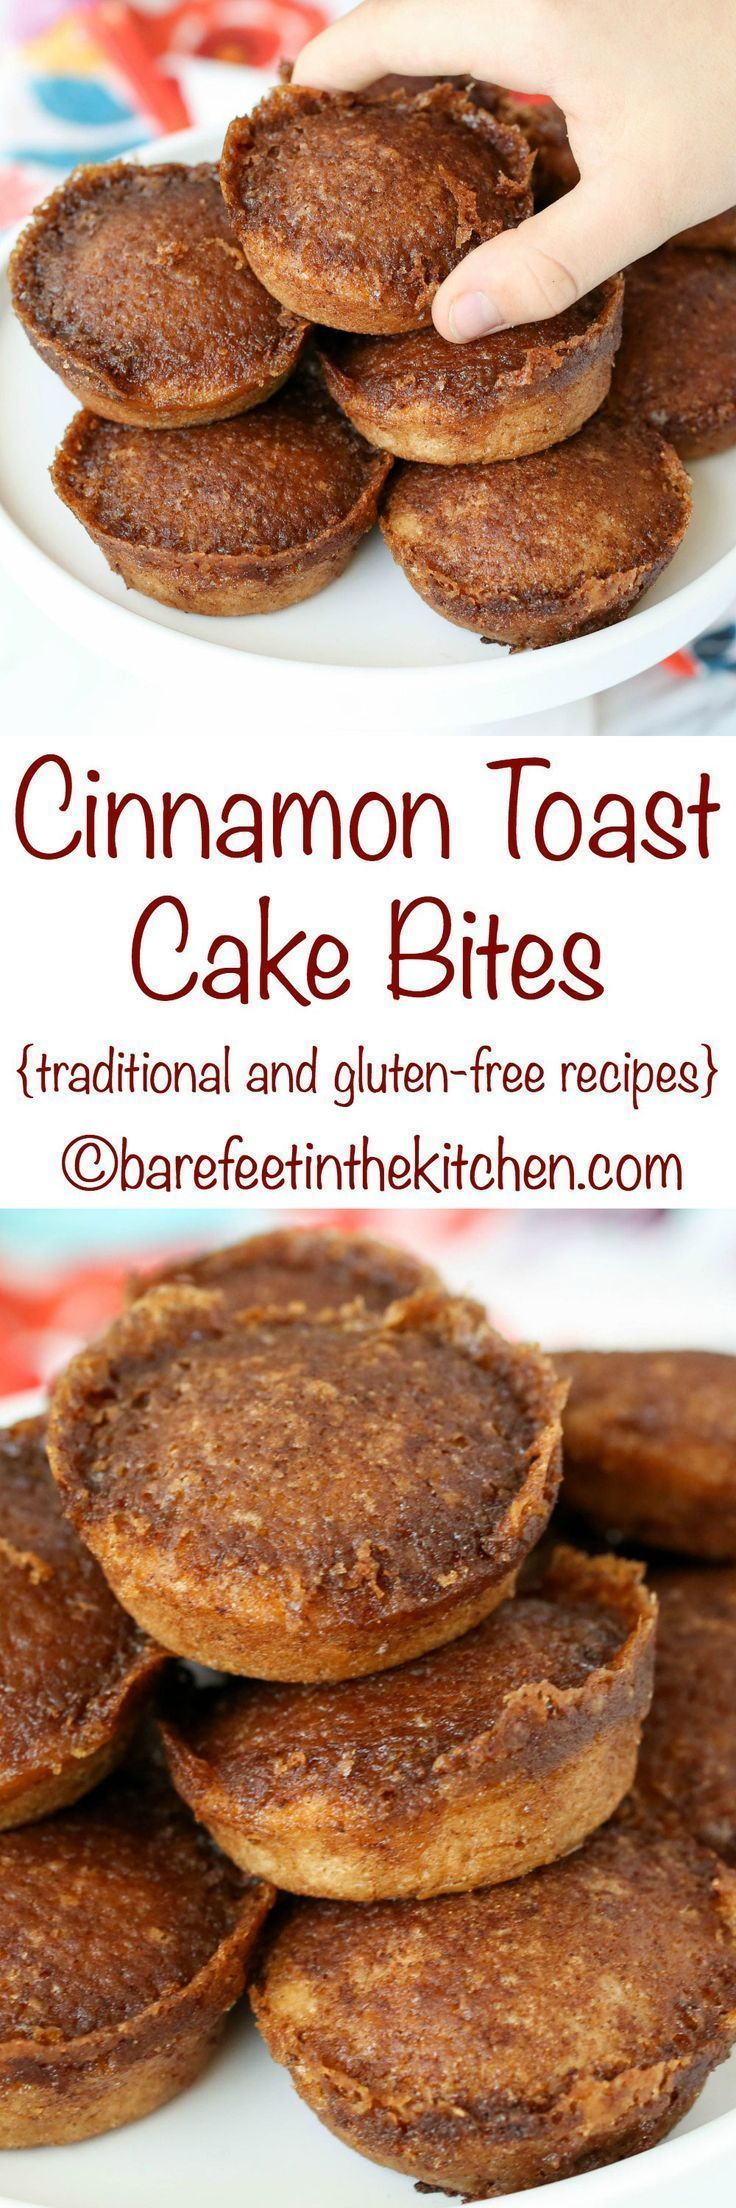 Cinnamon toast cake bites are a favorite with kids and